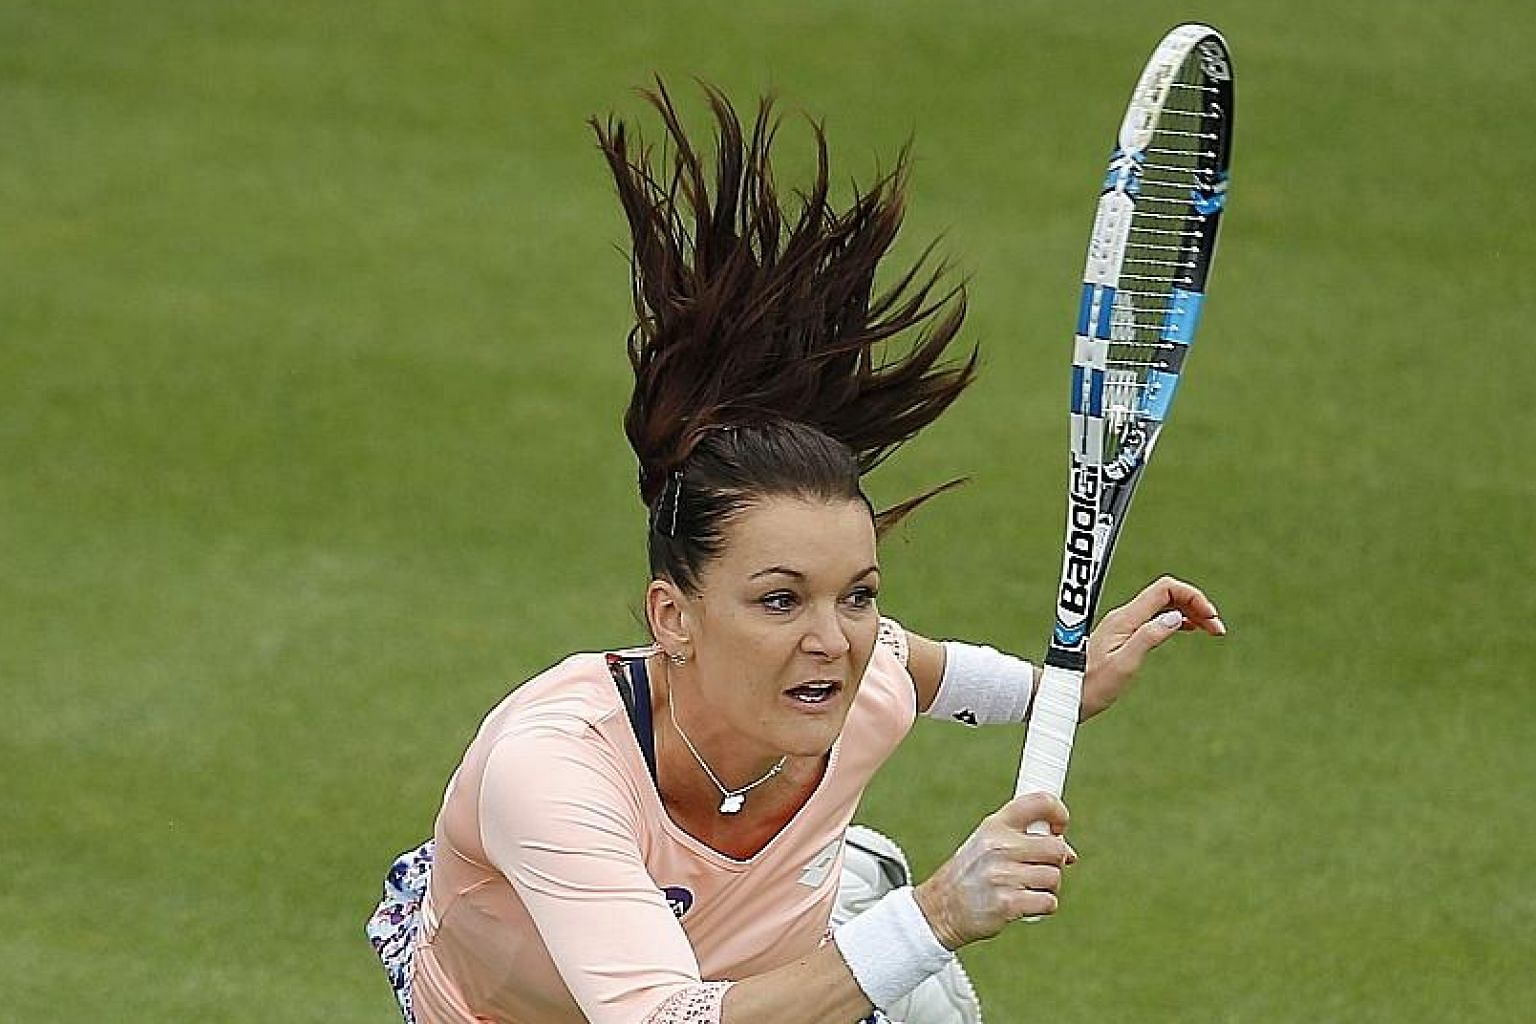 Agnieszka Radwanska on grass in Birmingham last week, where the top seed was shocked in the first round. She is enjoying a much better run this week in Eastbourne, where she has reached today's semi-finals.